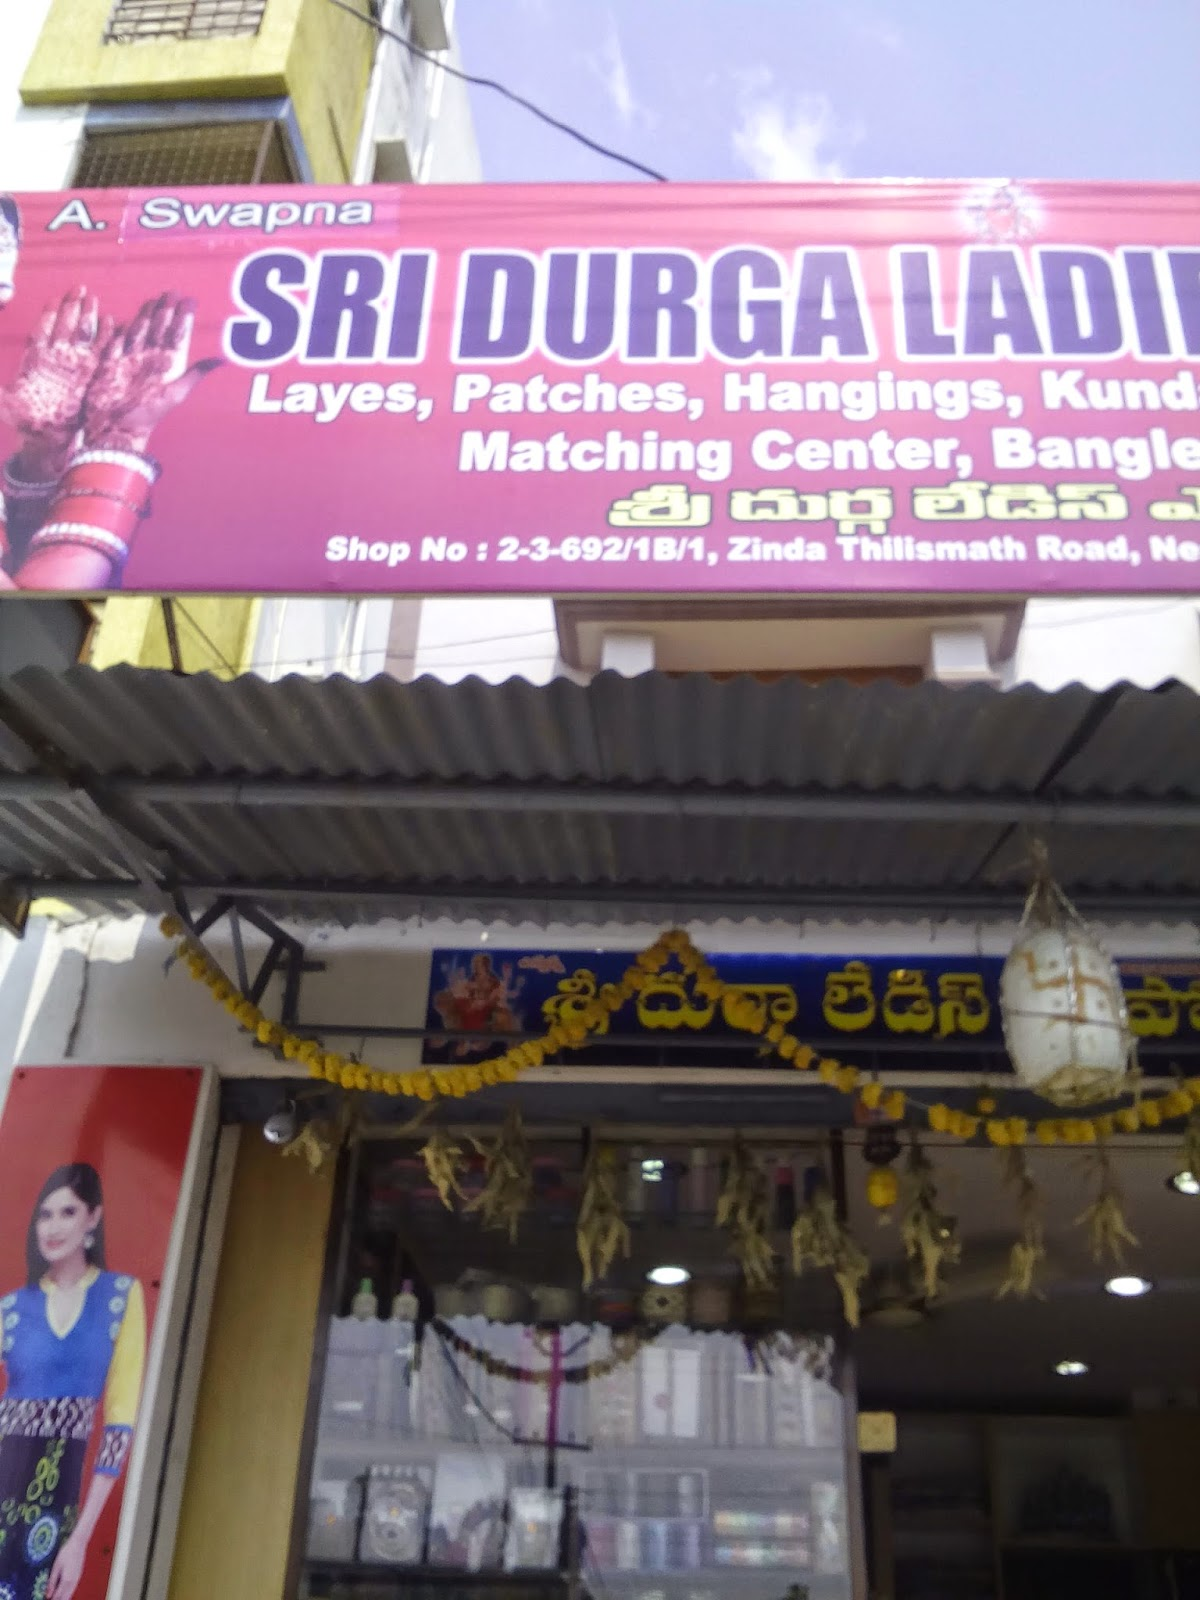 Sri Durga ladies emporium amberpet hyderabad